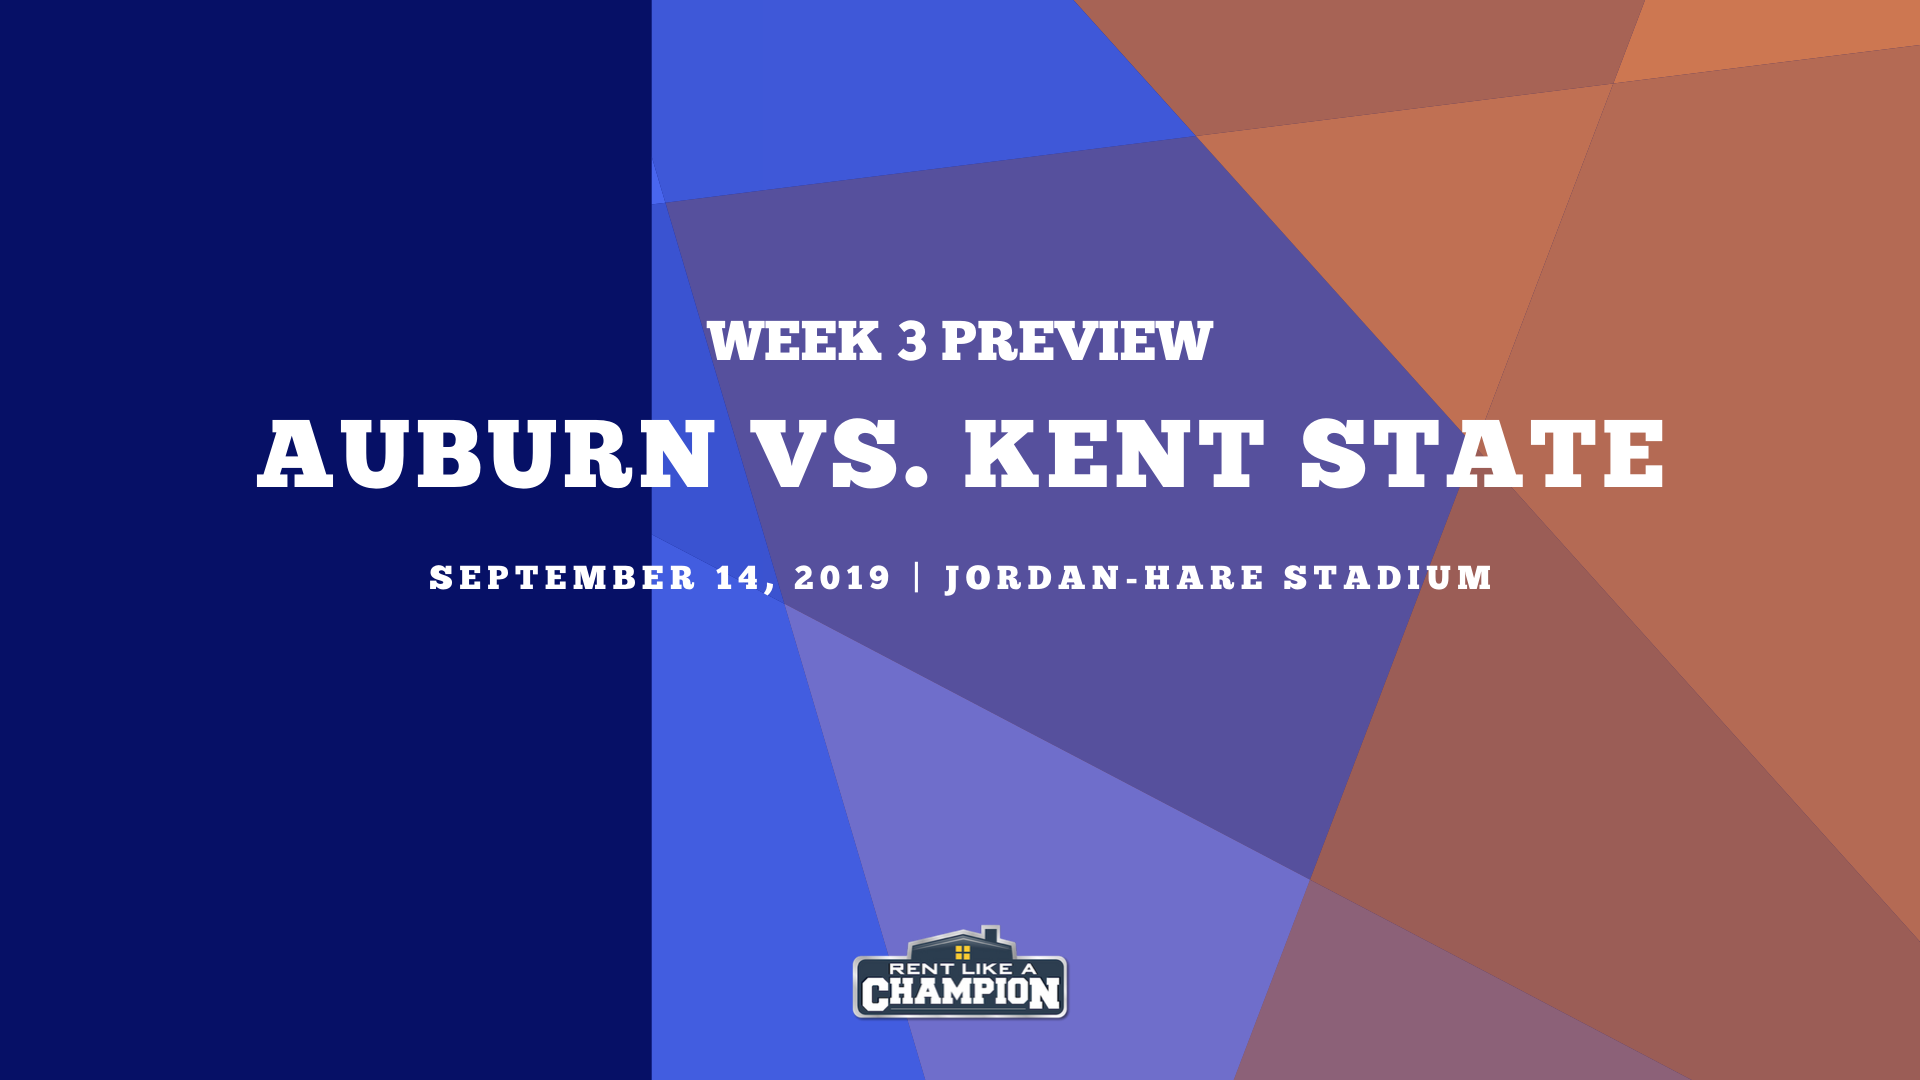 Auburn vs. Kent State: Preview, keys to the game, and predictions